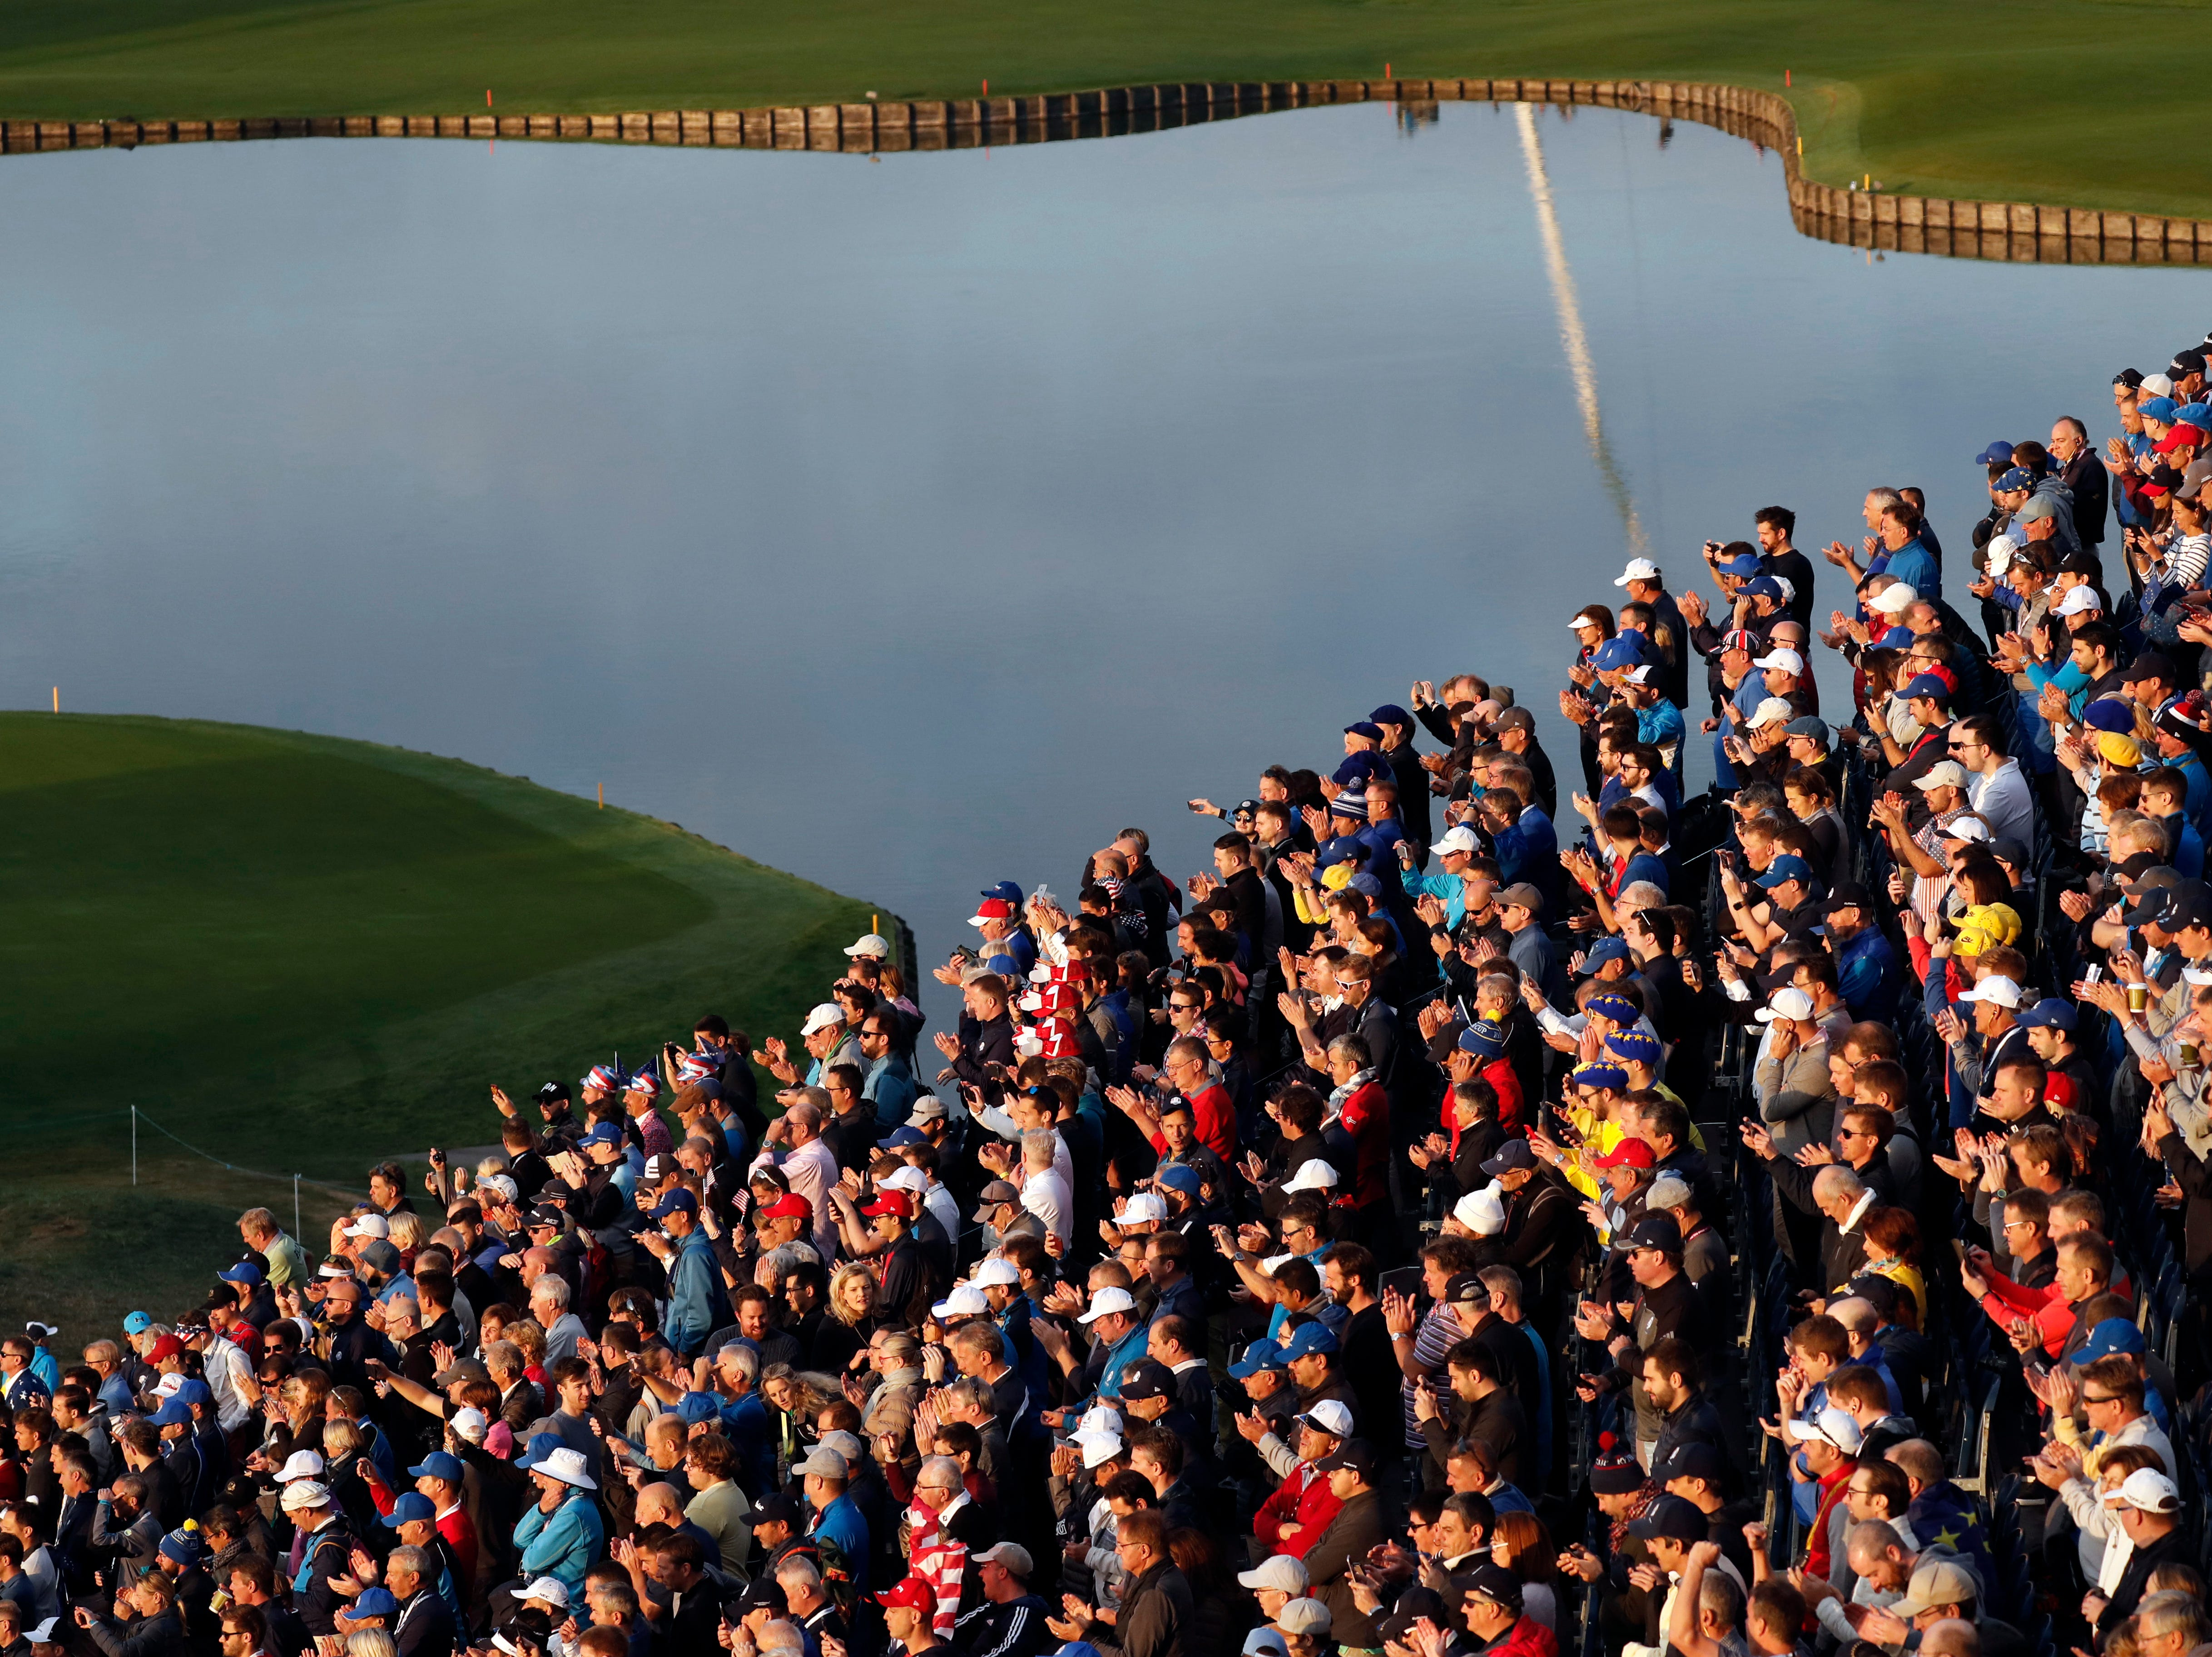 Supporters watches players while standing in a grandstand overlooking the first tee.